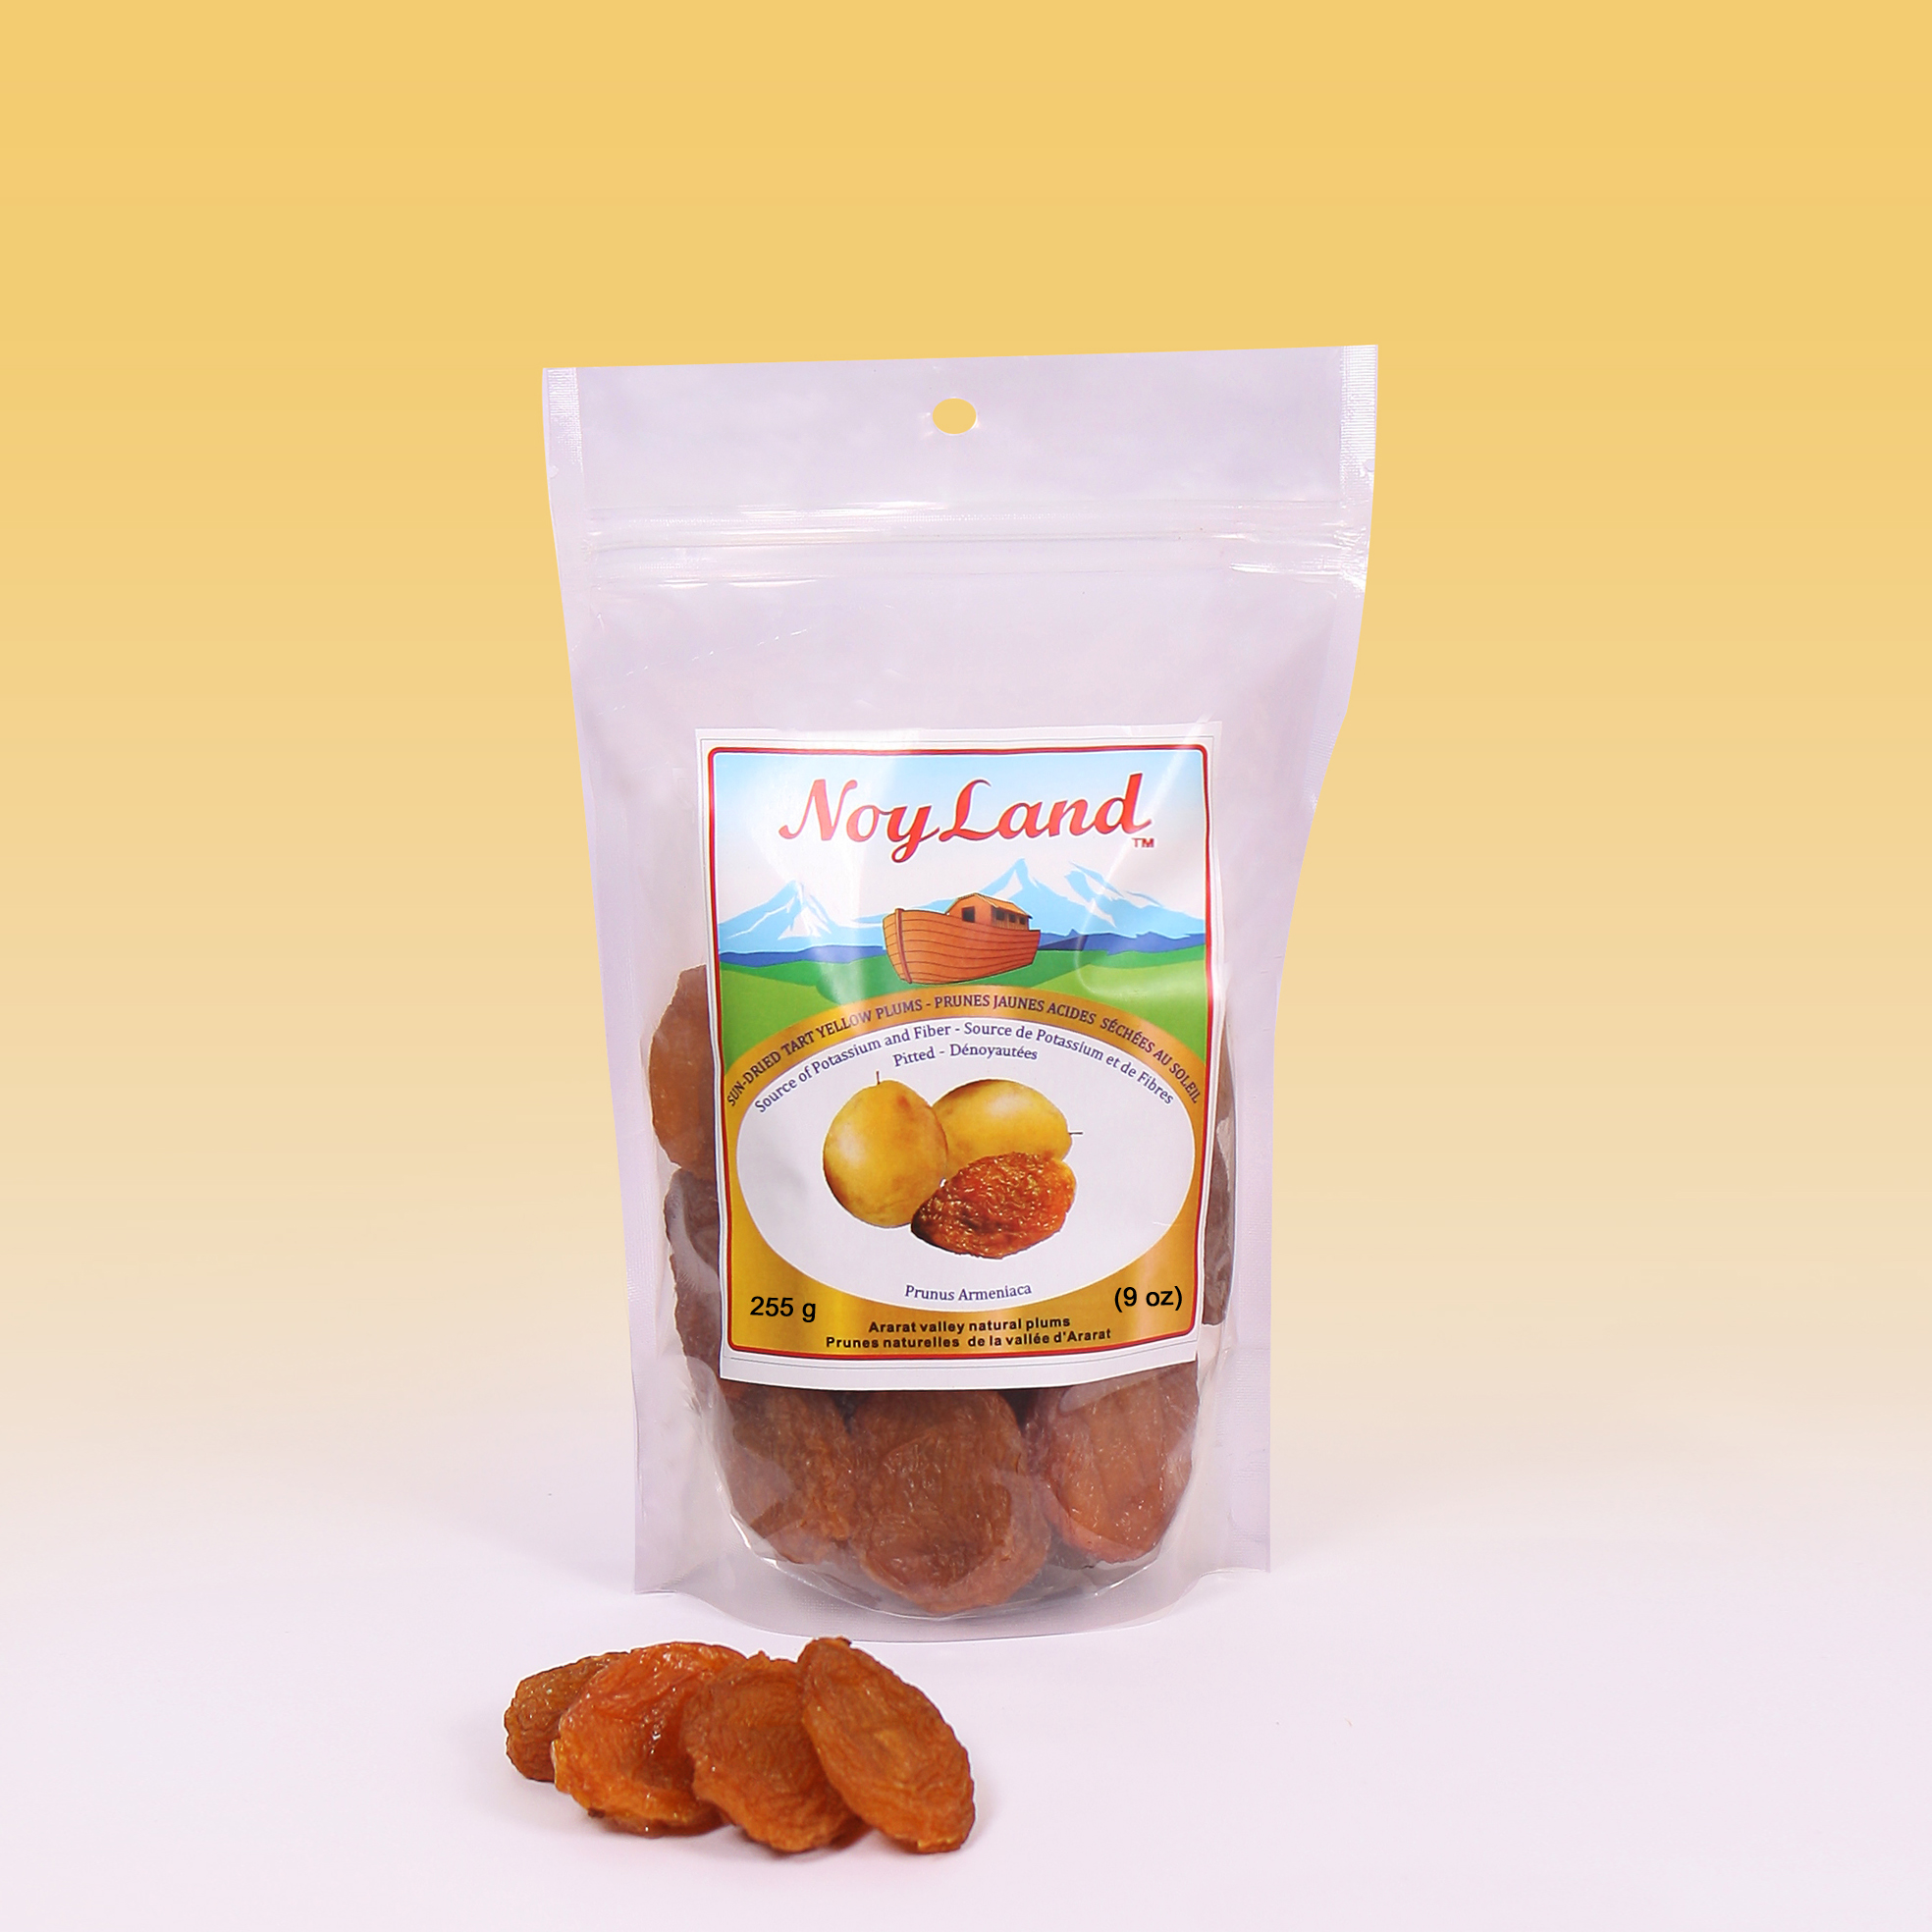 SUN-DRIED TART YELLOW PLUMS 255 g